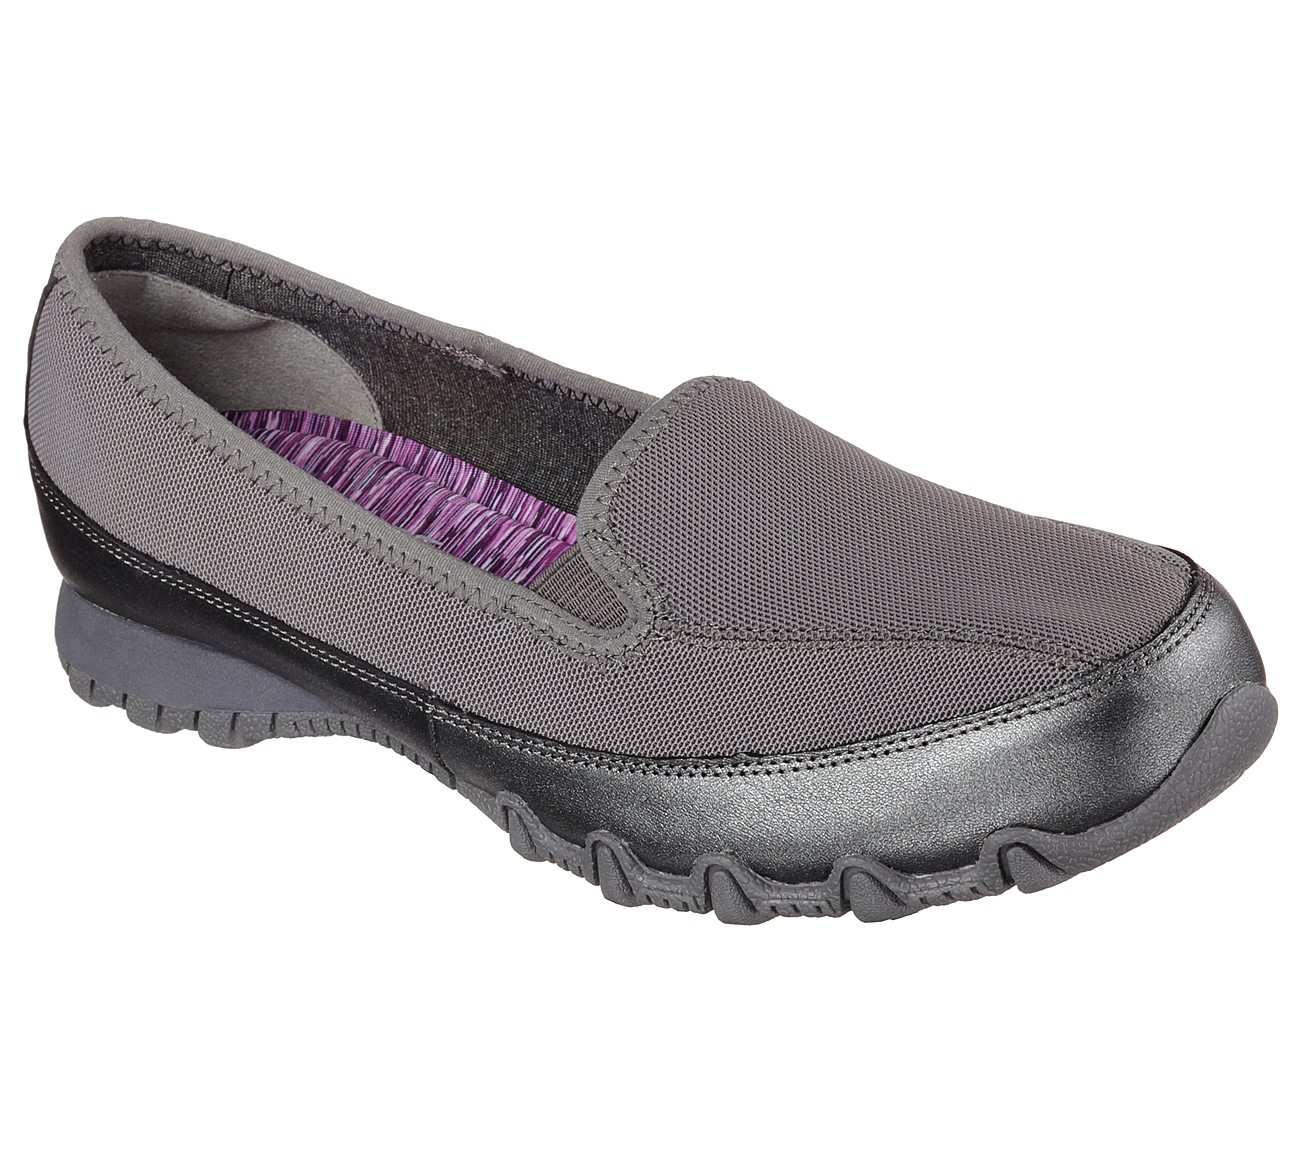 Skechers Relaxed Fit® Bikers Split Decision Slip-On